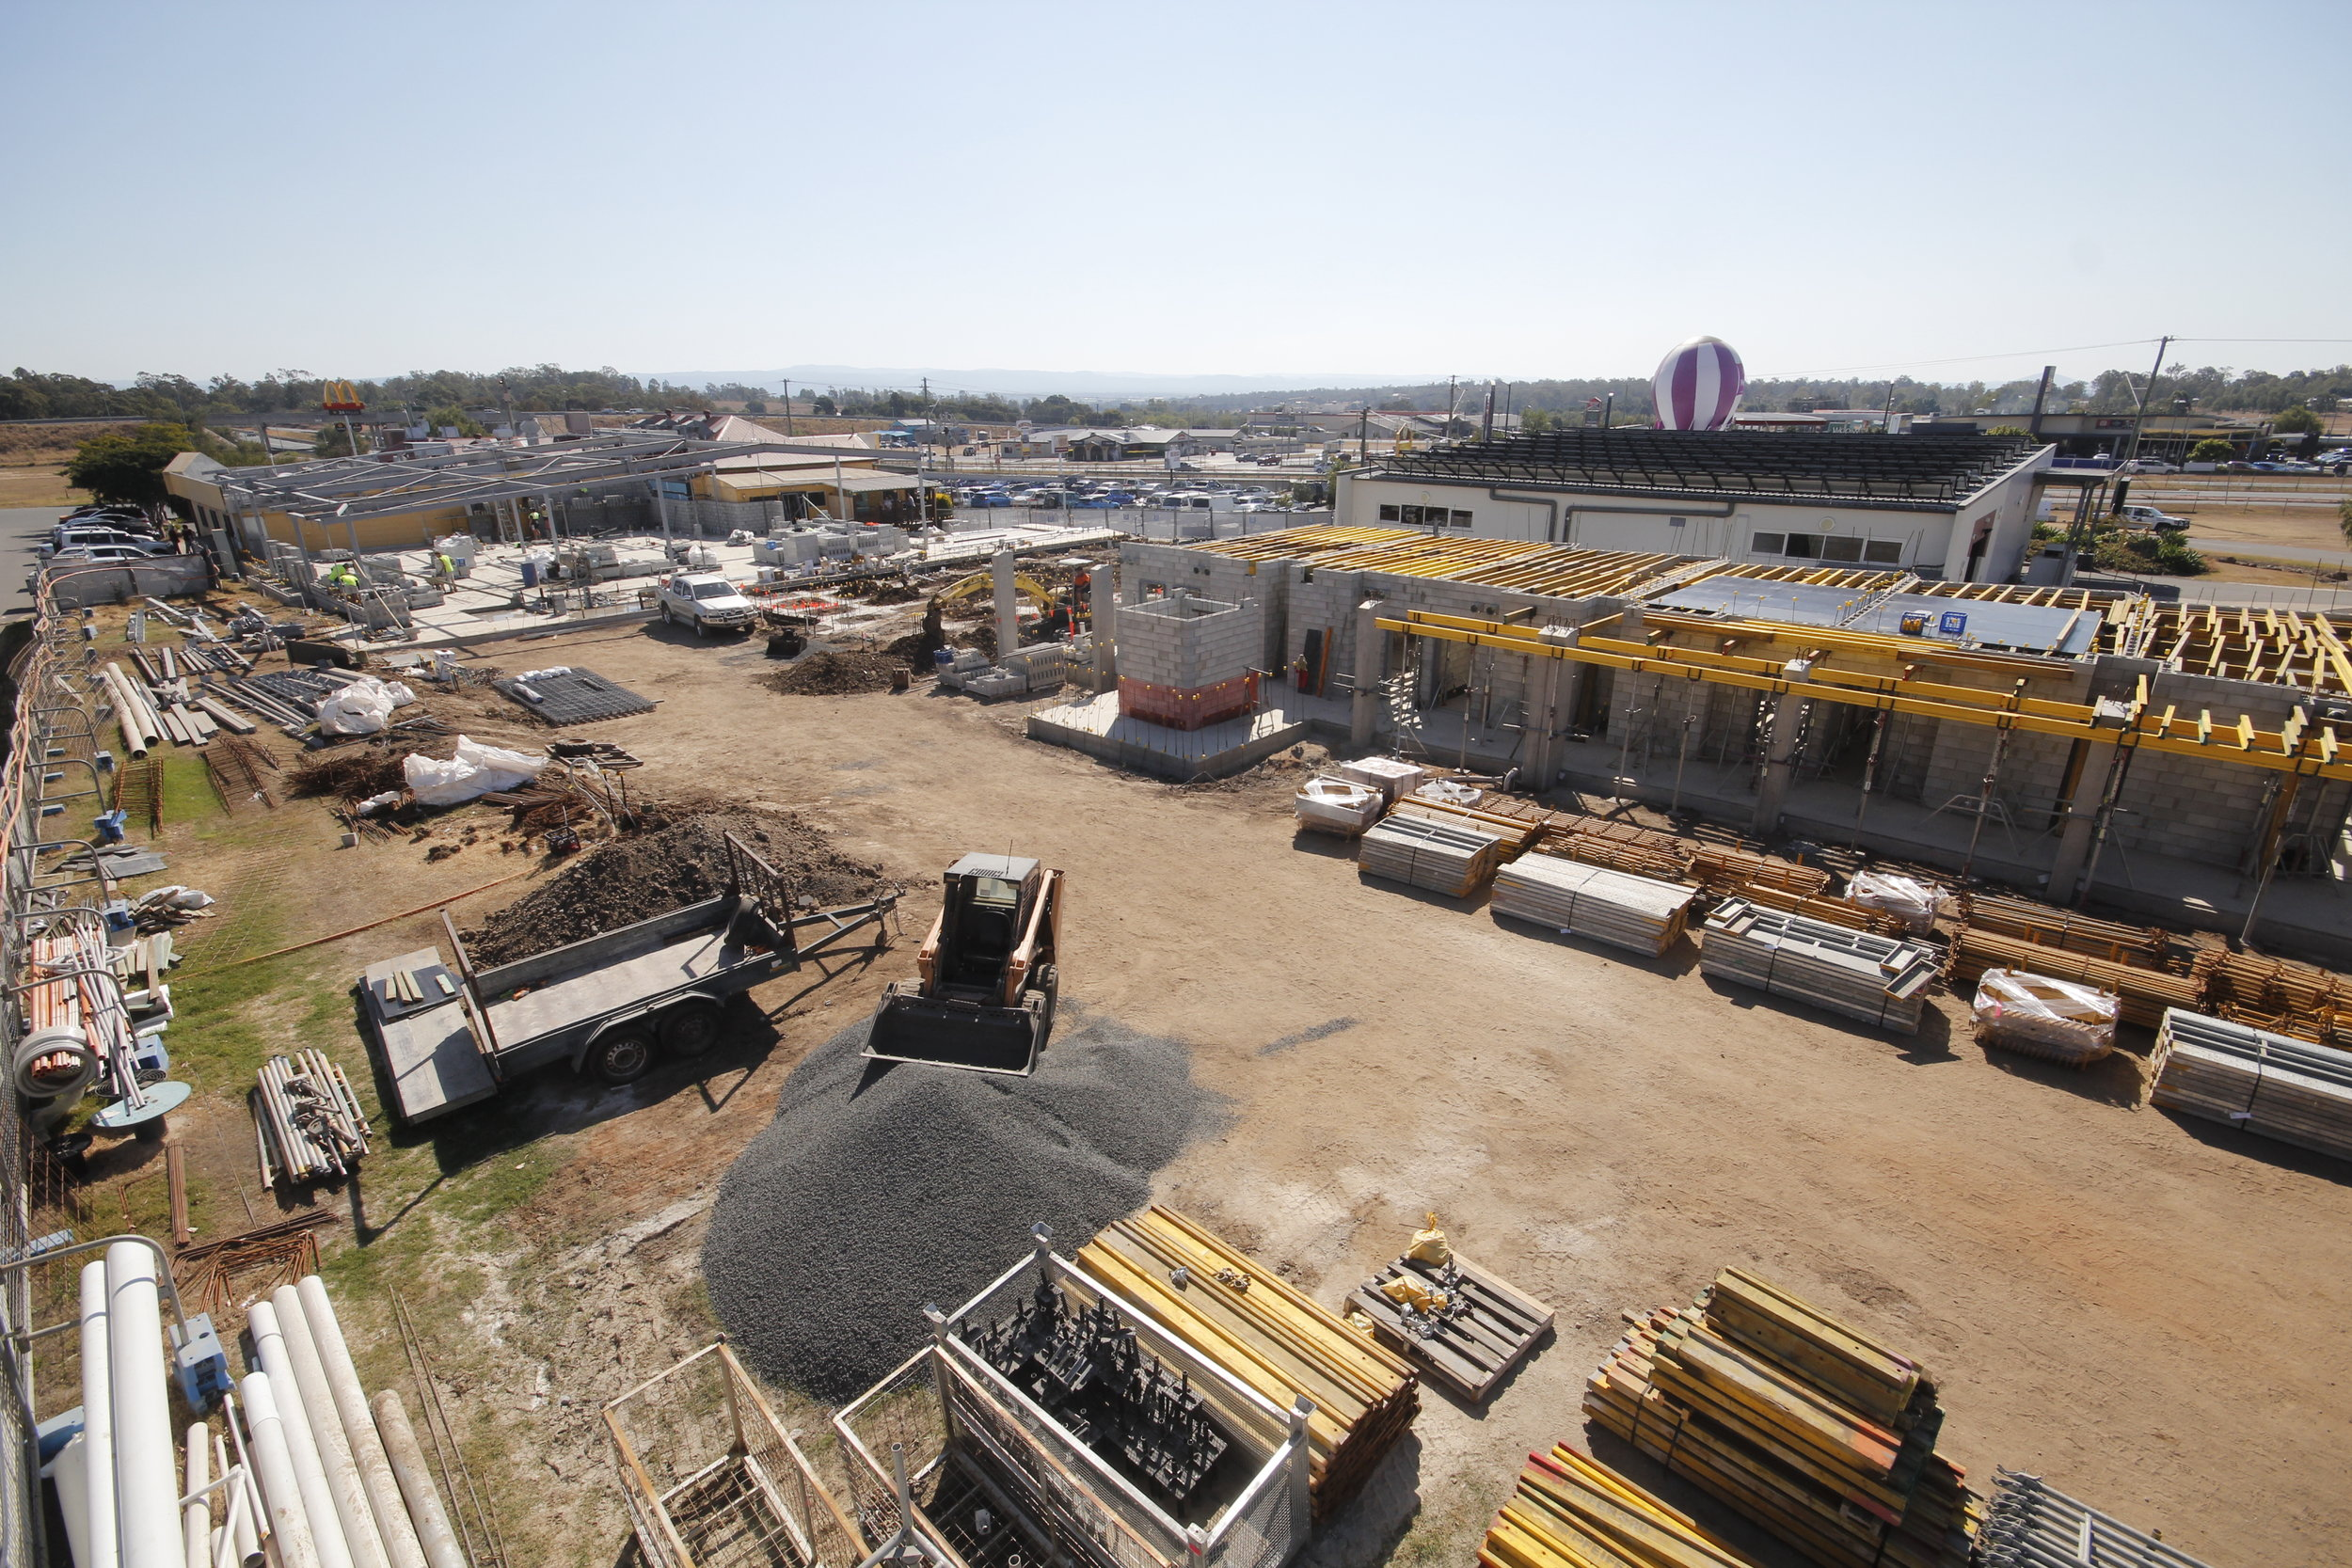 The ground floor of the Motel is well under way, and the framing is quickly going up over the new function rooms.